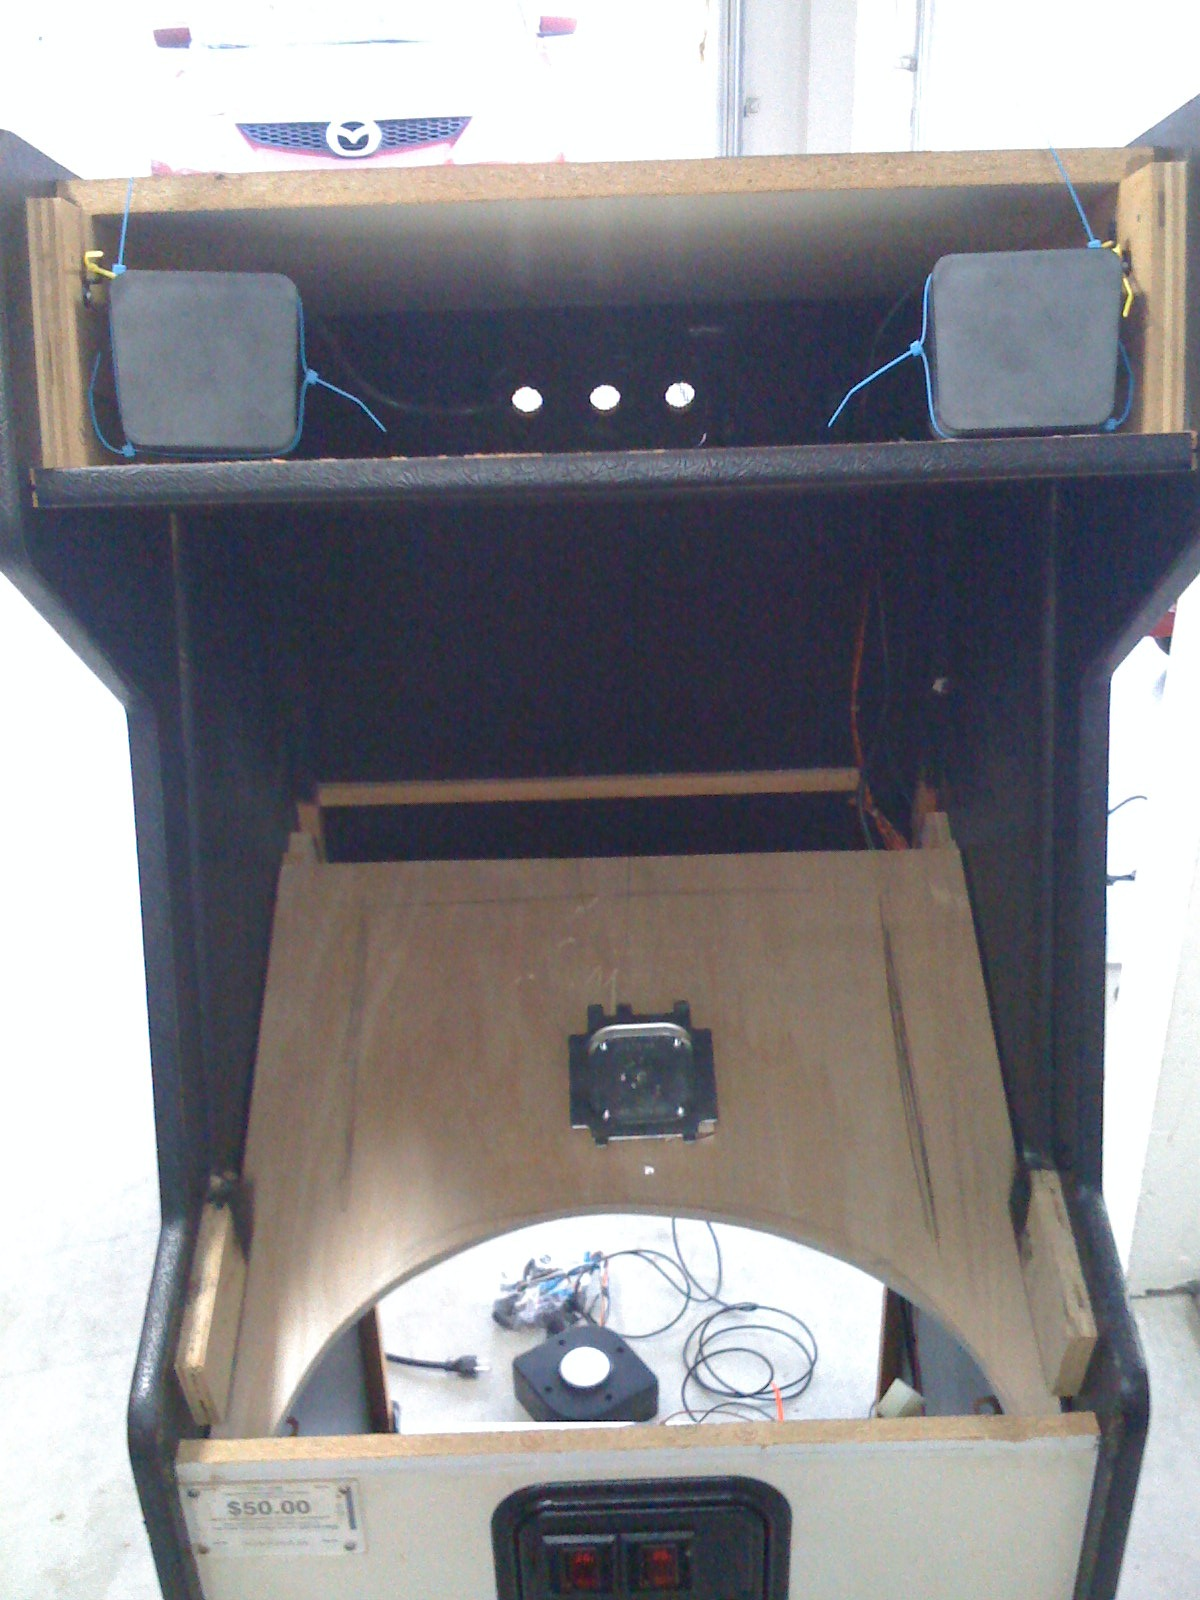 Building your own Arcade Cabinet for Geeks - Part 2 - The